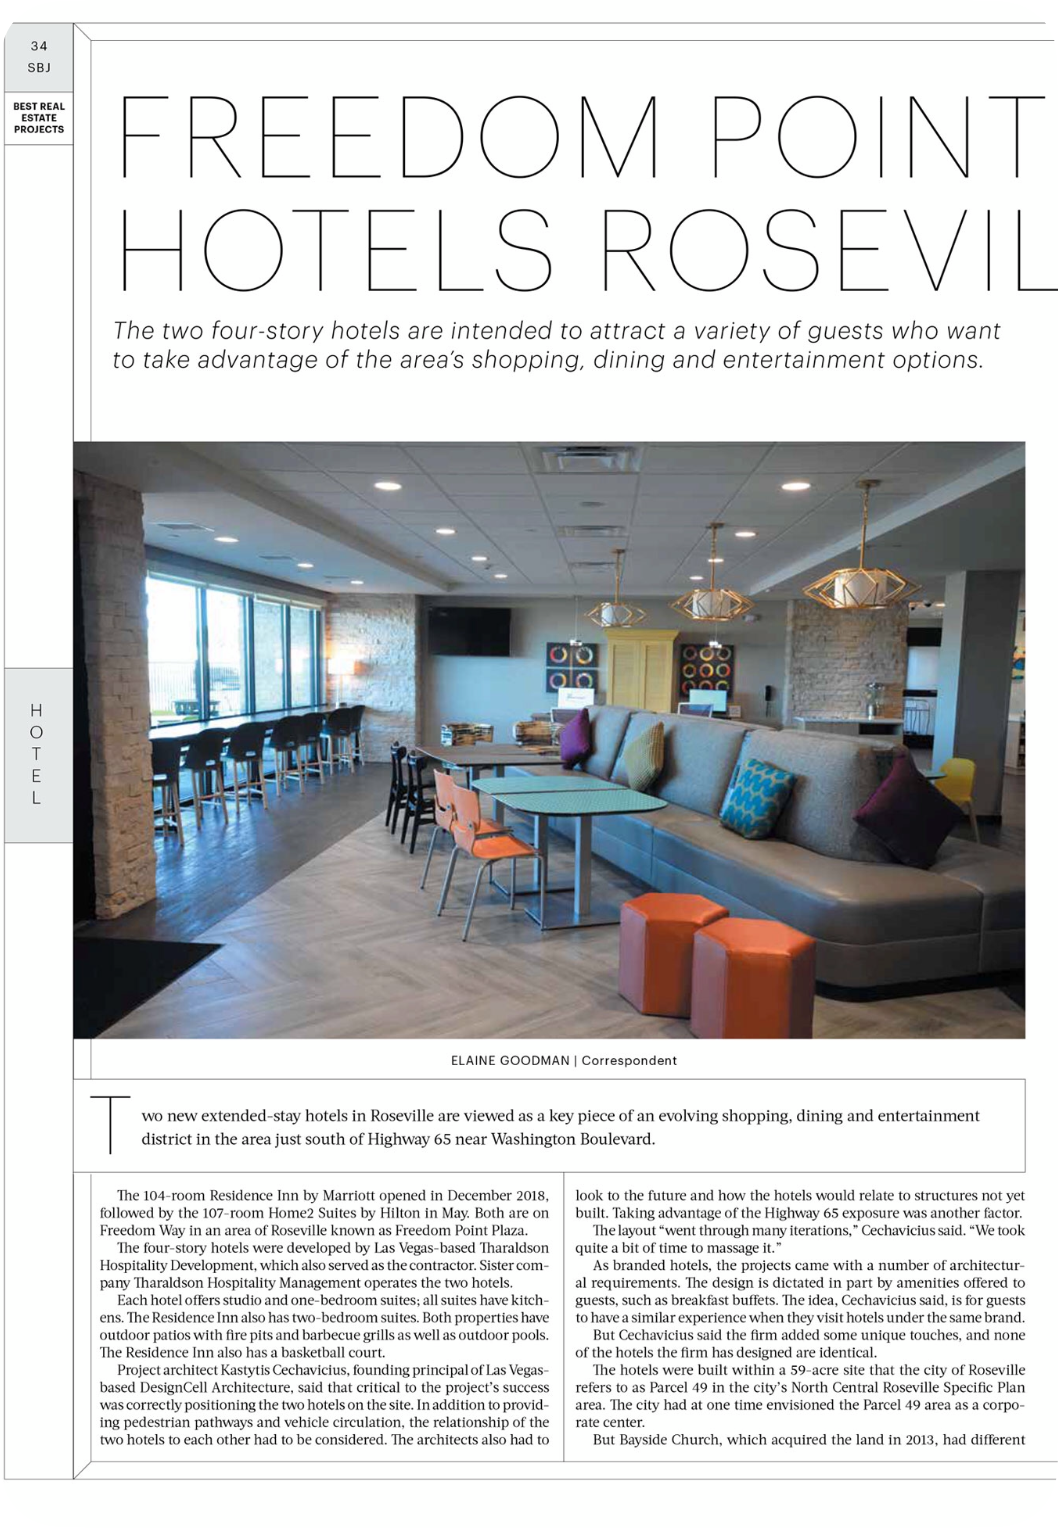 Sacramento Business Journal - Roseville Hotel Development - DesignCell Architecture